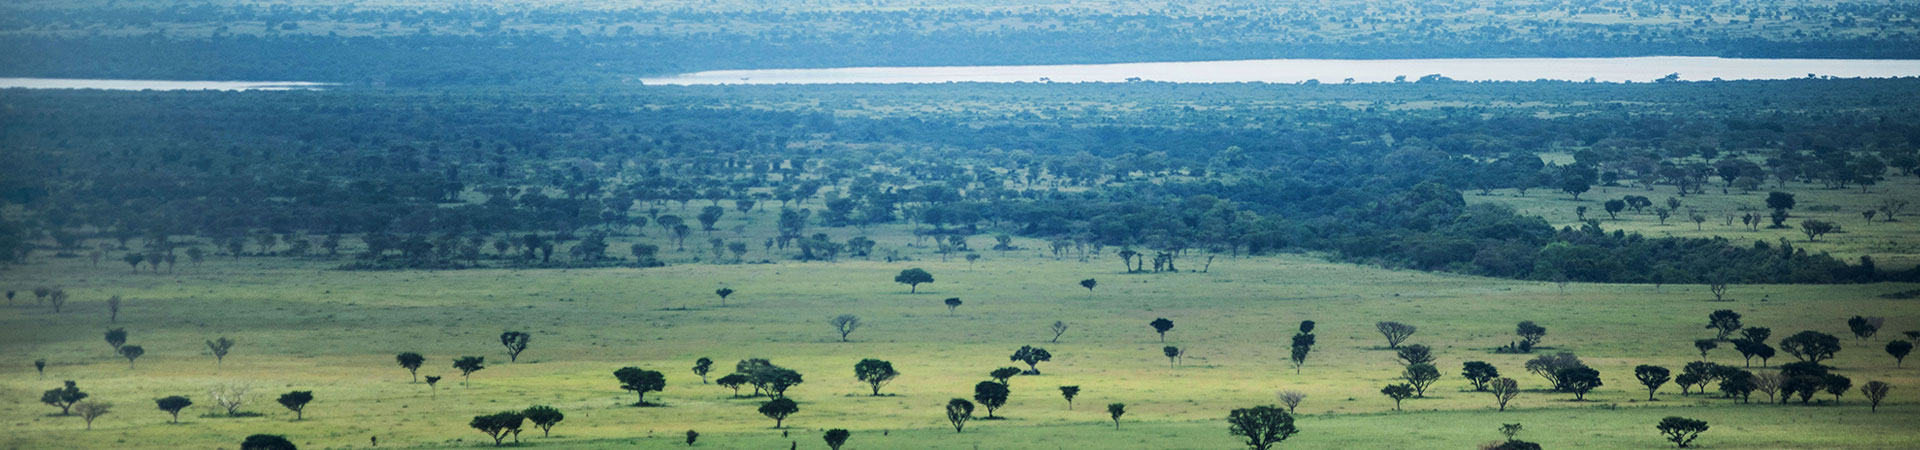 9-Days-Uganda-Apes-Safari-pg